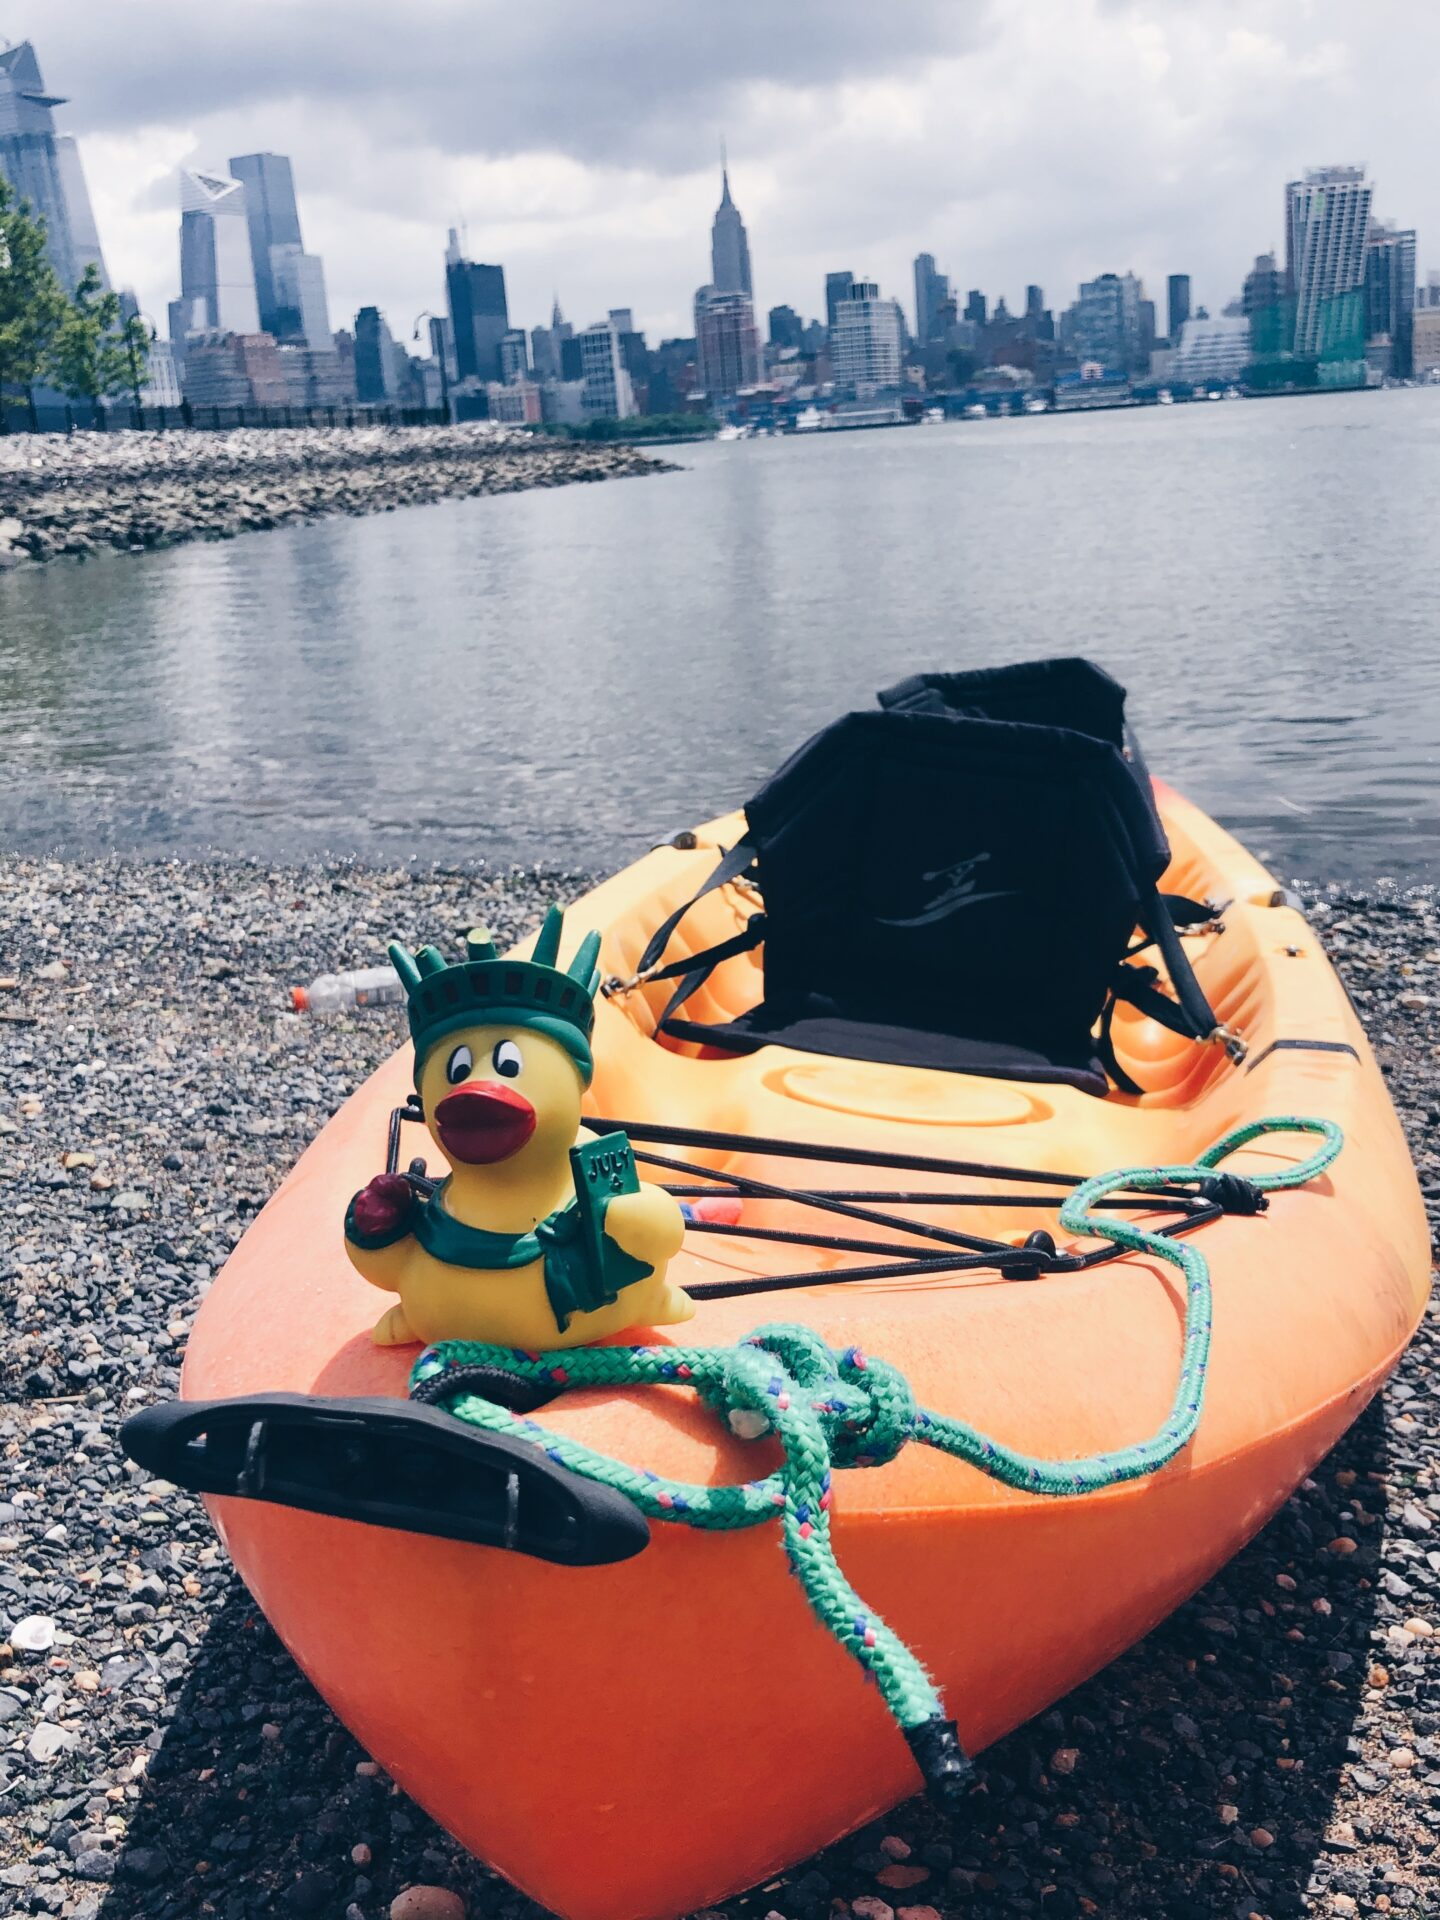 kayak with new york city view